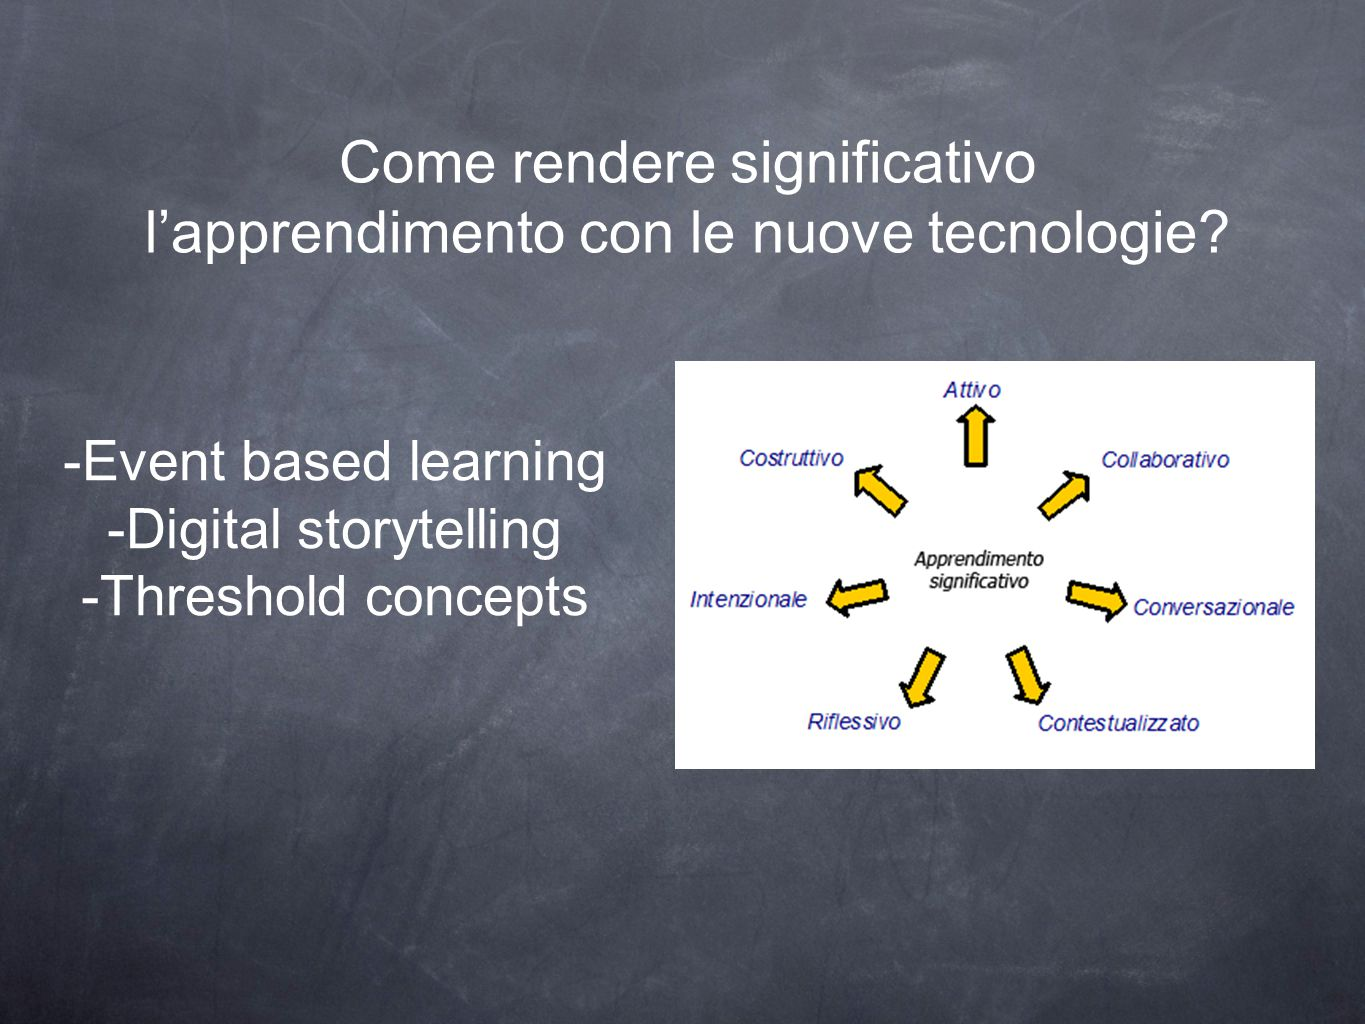 Come rendere significativo l'apprendimento con le nuove tecnologie? -Event based learning -Digital storytelling -Threshold concepts